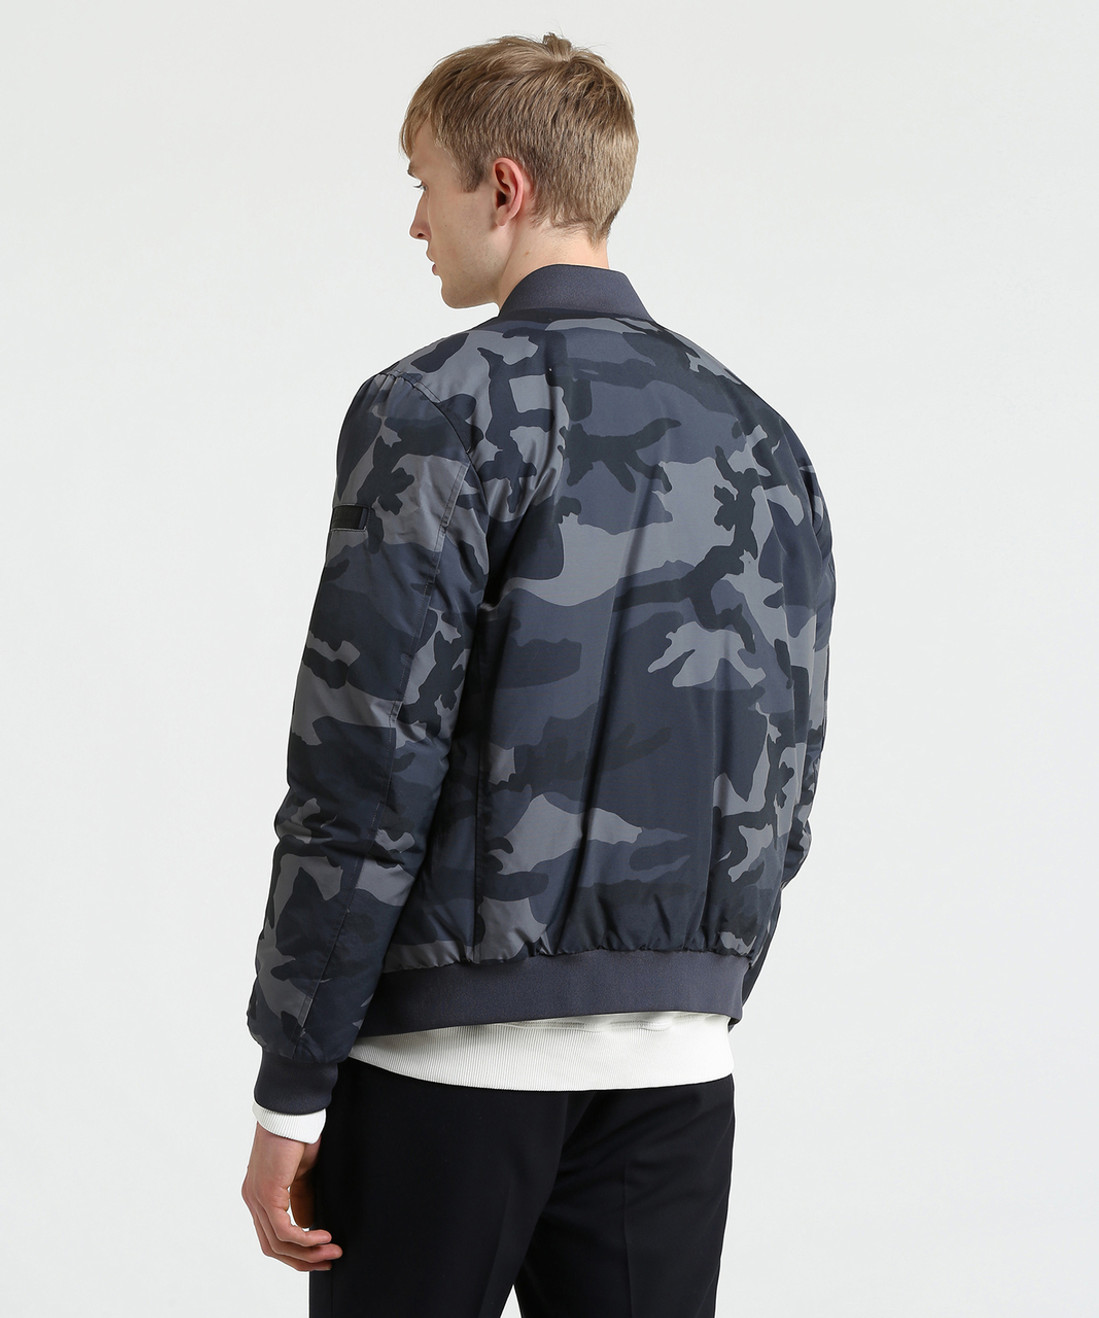 Men's Camo Reversible Bomber Down Jacket - John Rich & Bros.